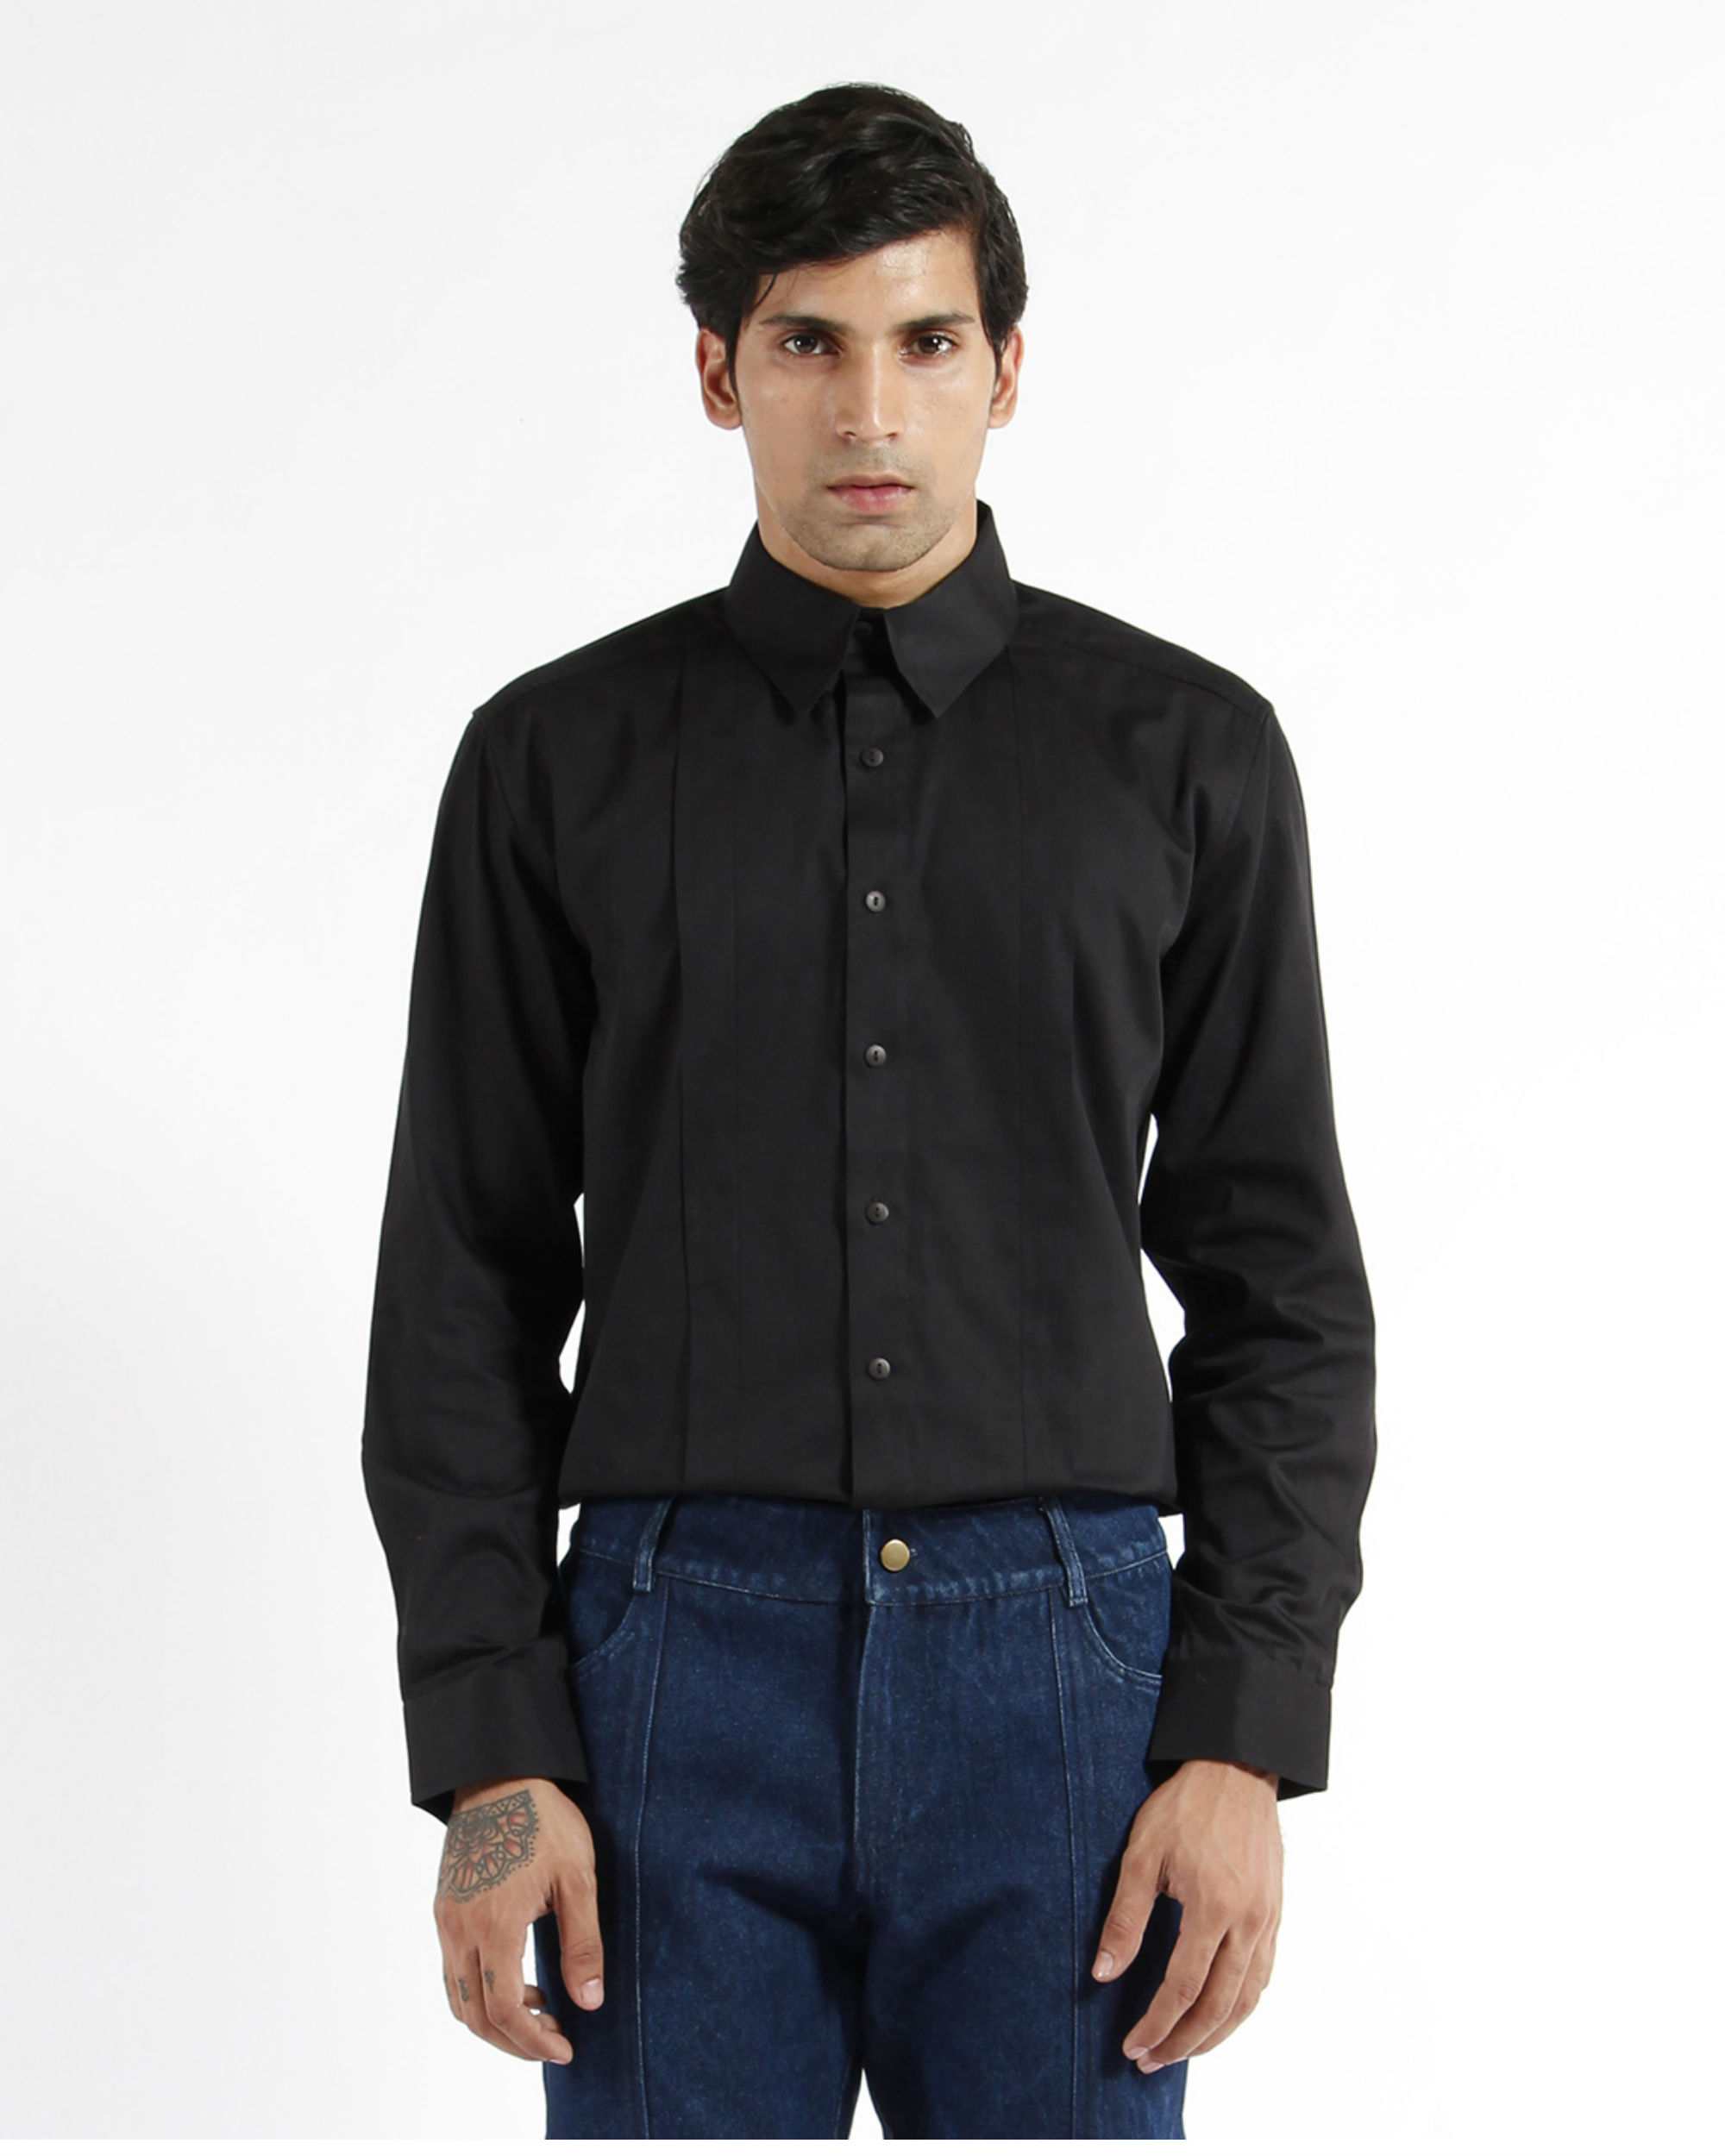 Black cotton satin pleated shirt